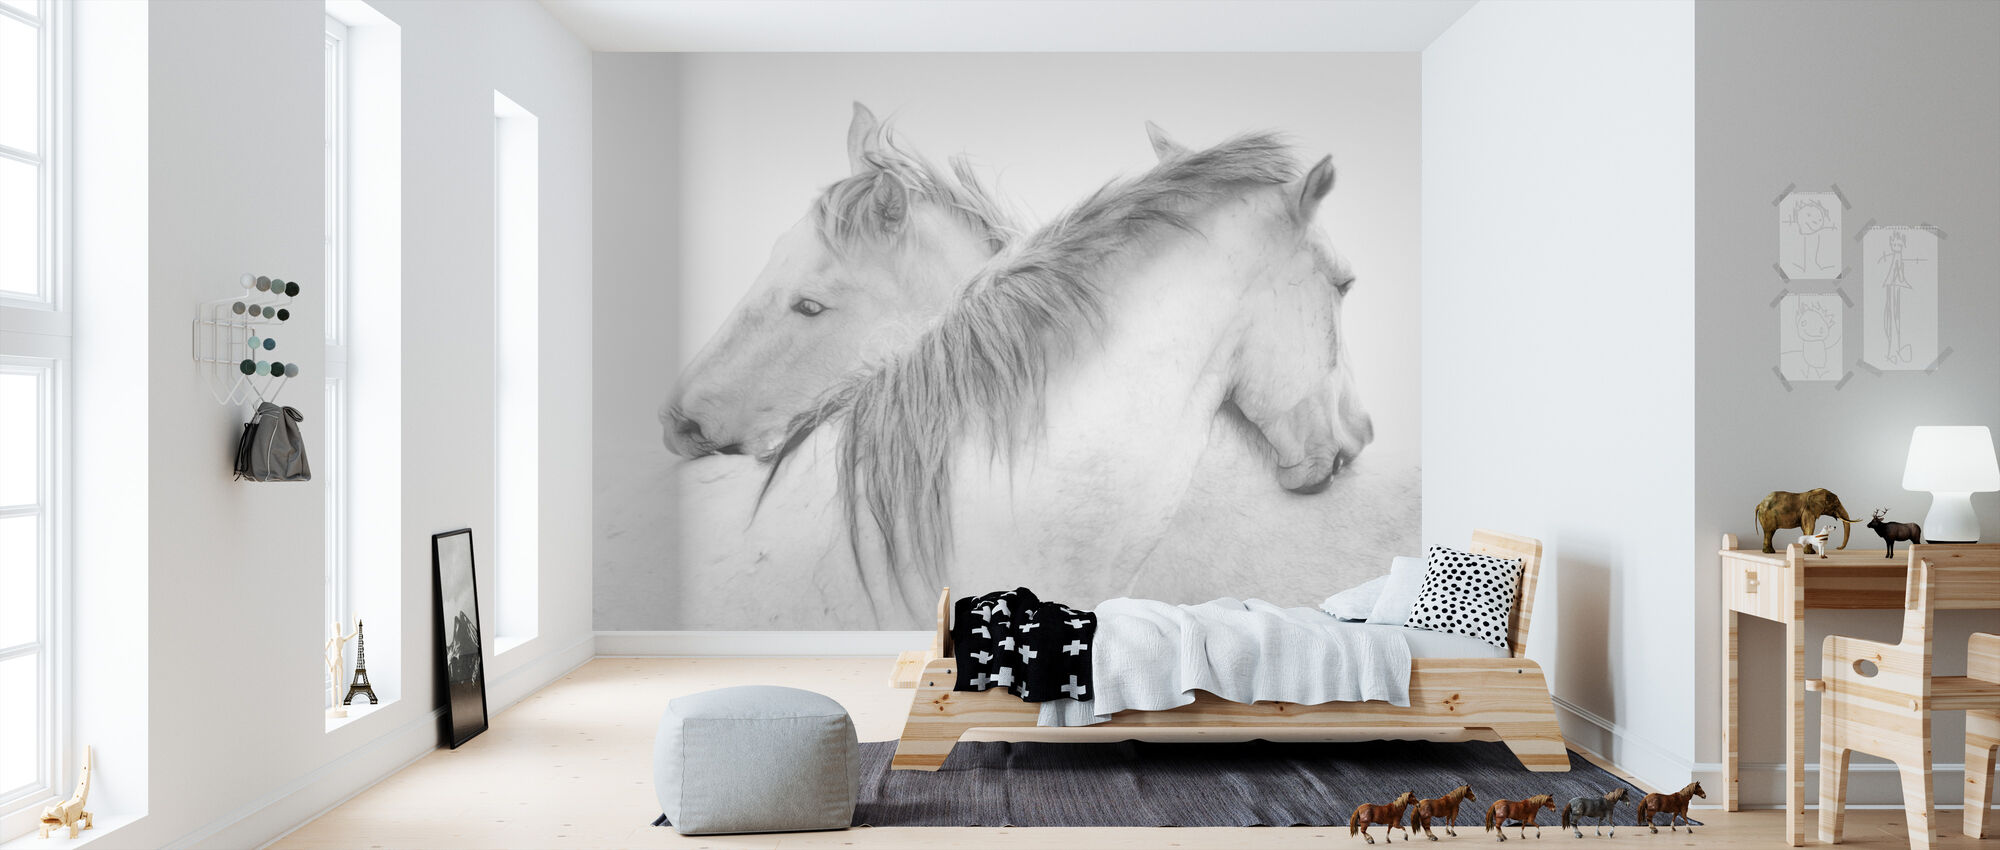 Horses - Wallpaper - Kids Room